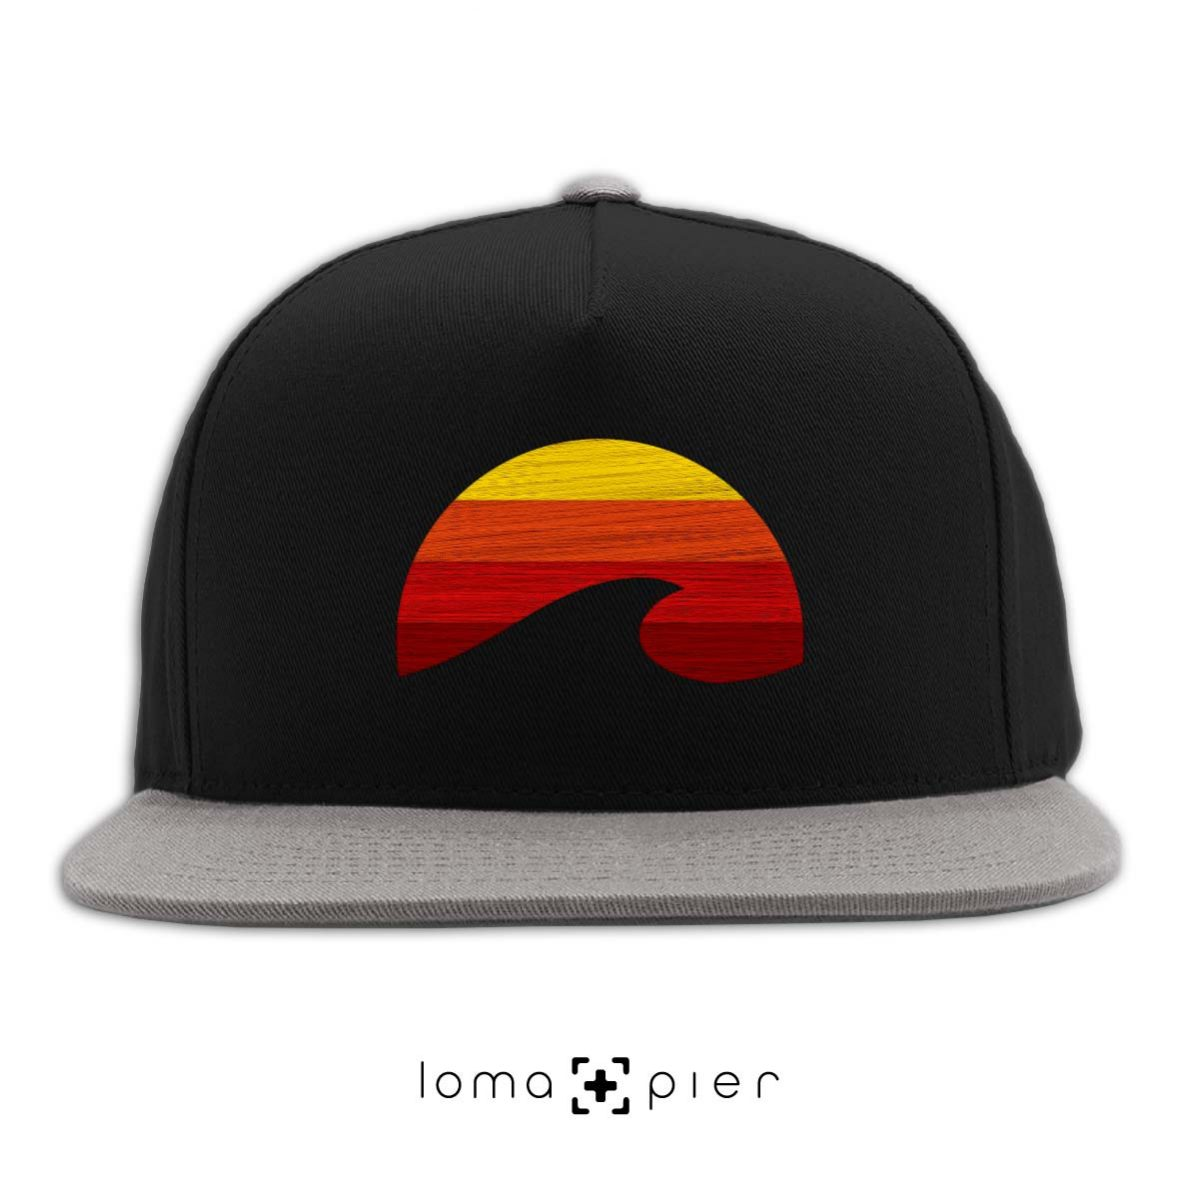 PACIFIC SUN hat in black grey by loma+pier hat store